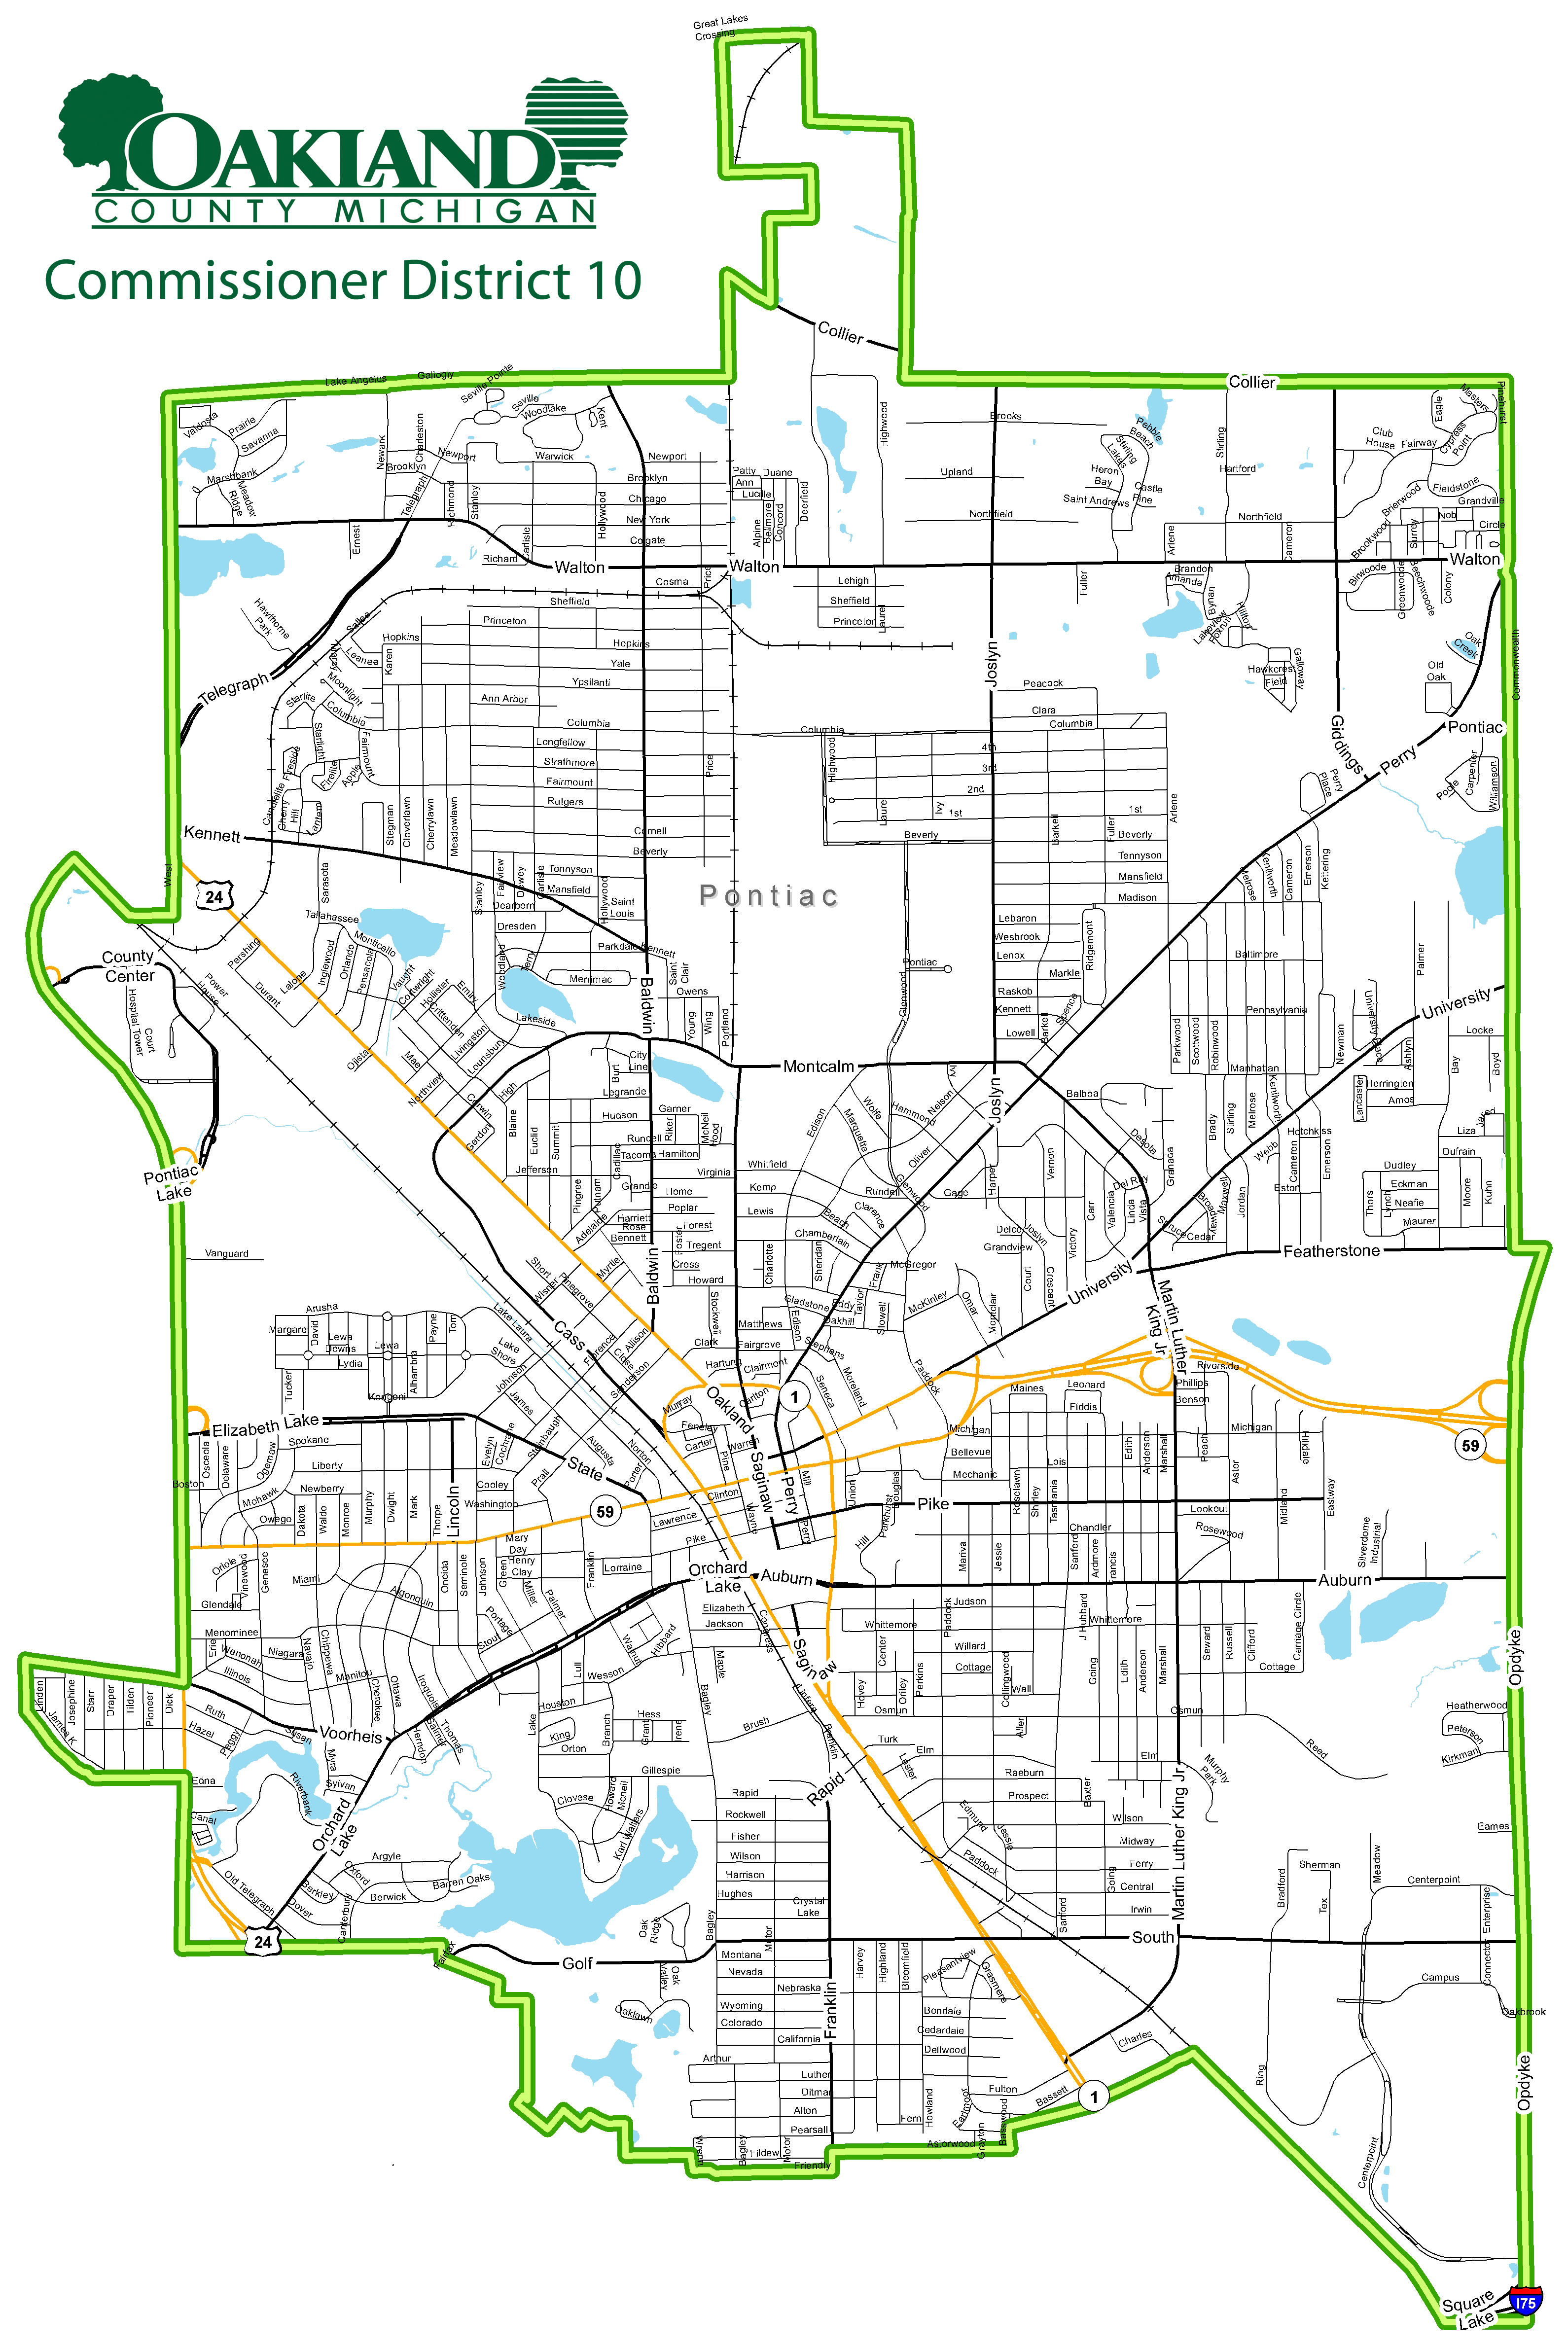 Street map of Commissioner District 10